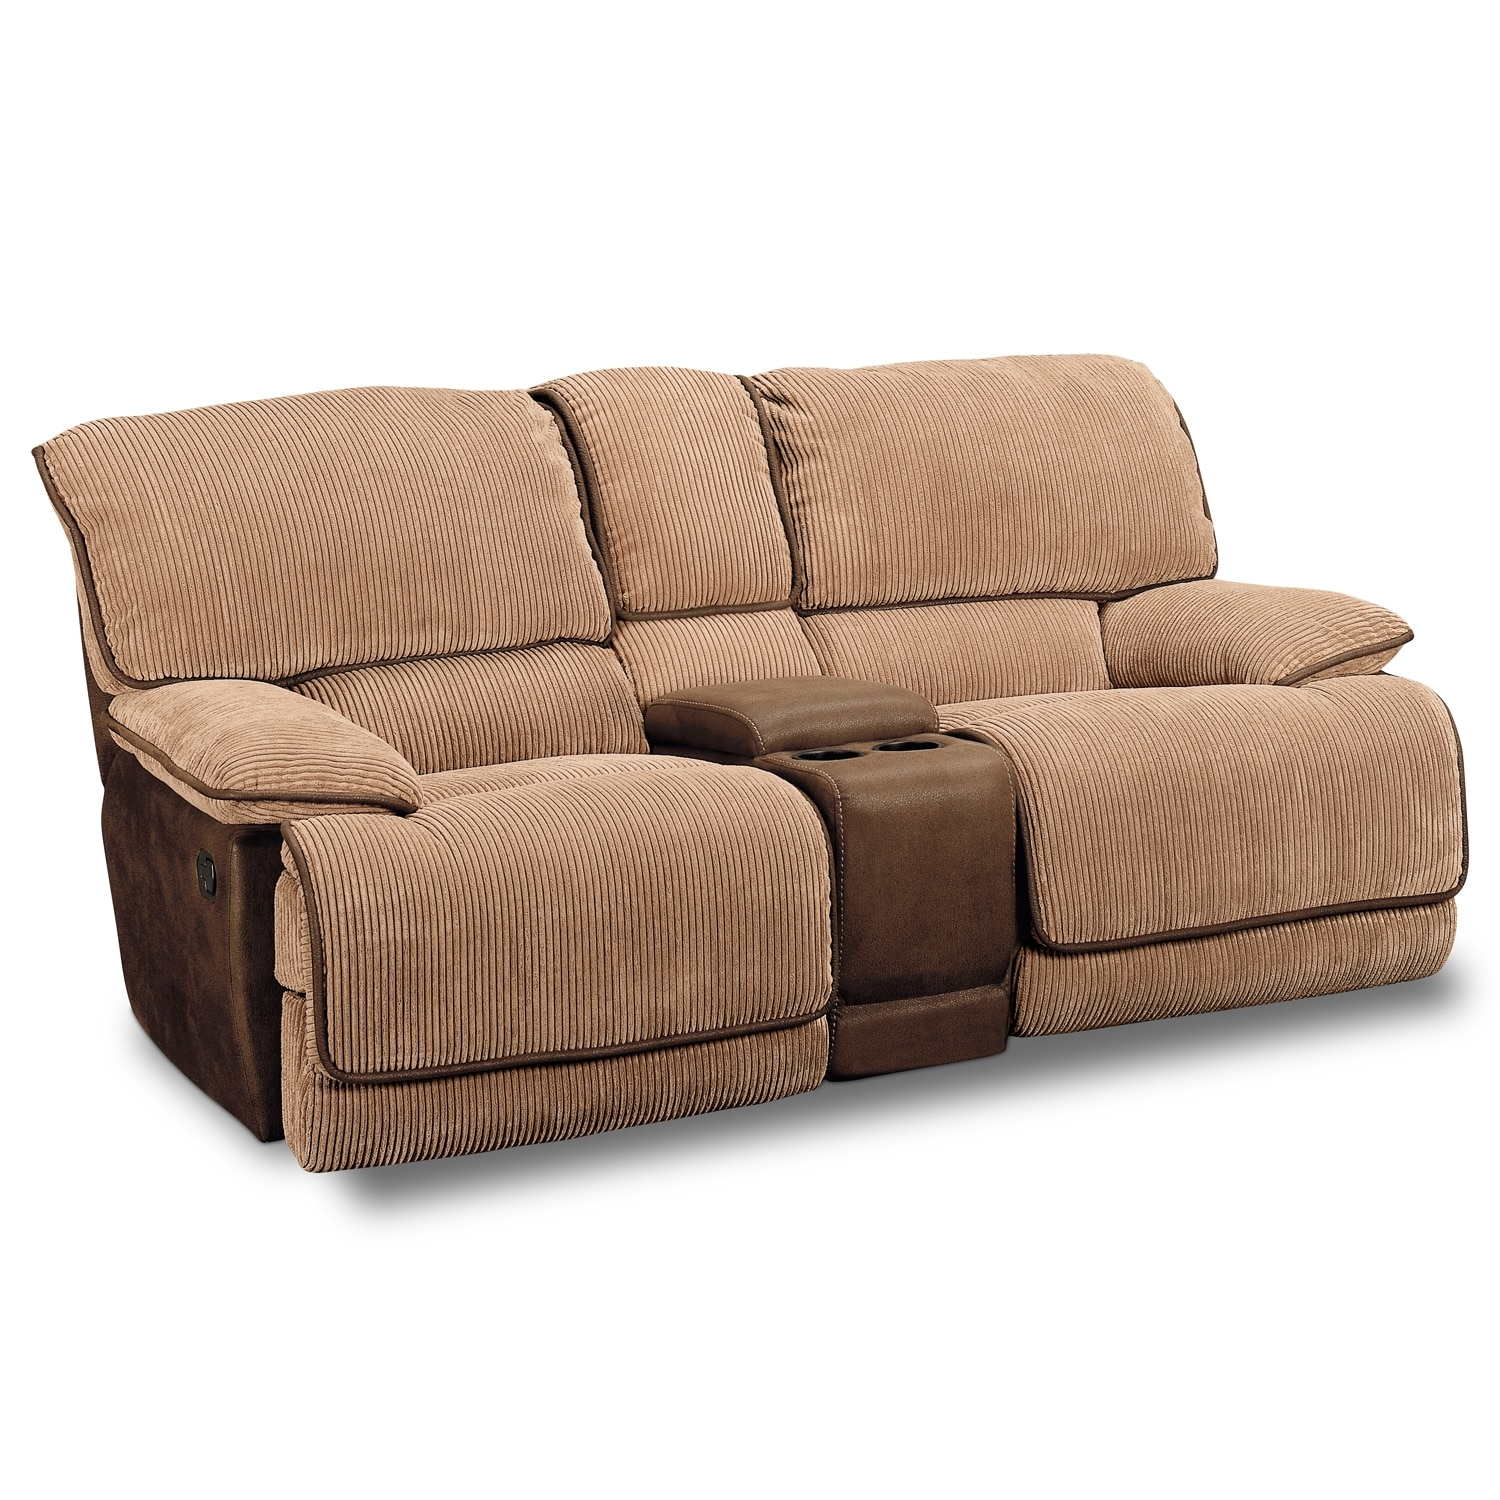 Laguna Gliding Reclining Loveseat Camel American Signature Furniture